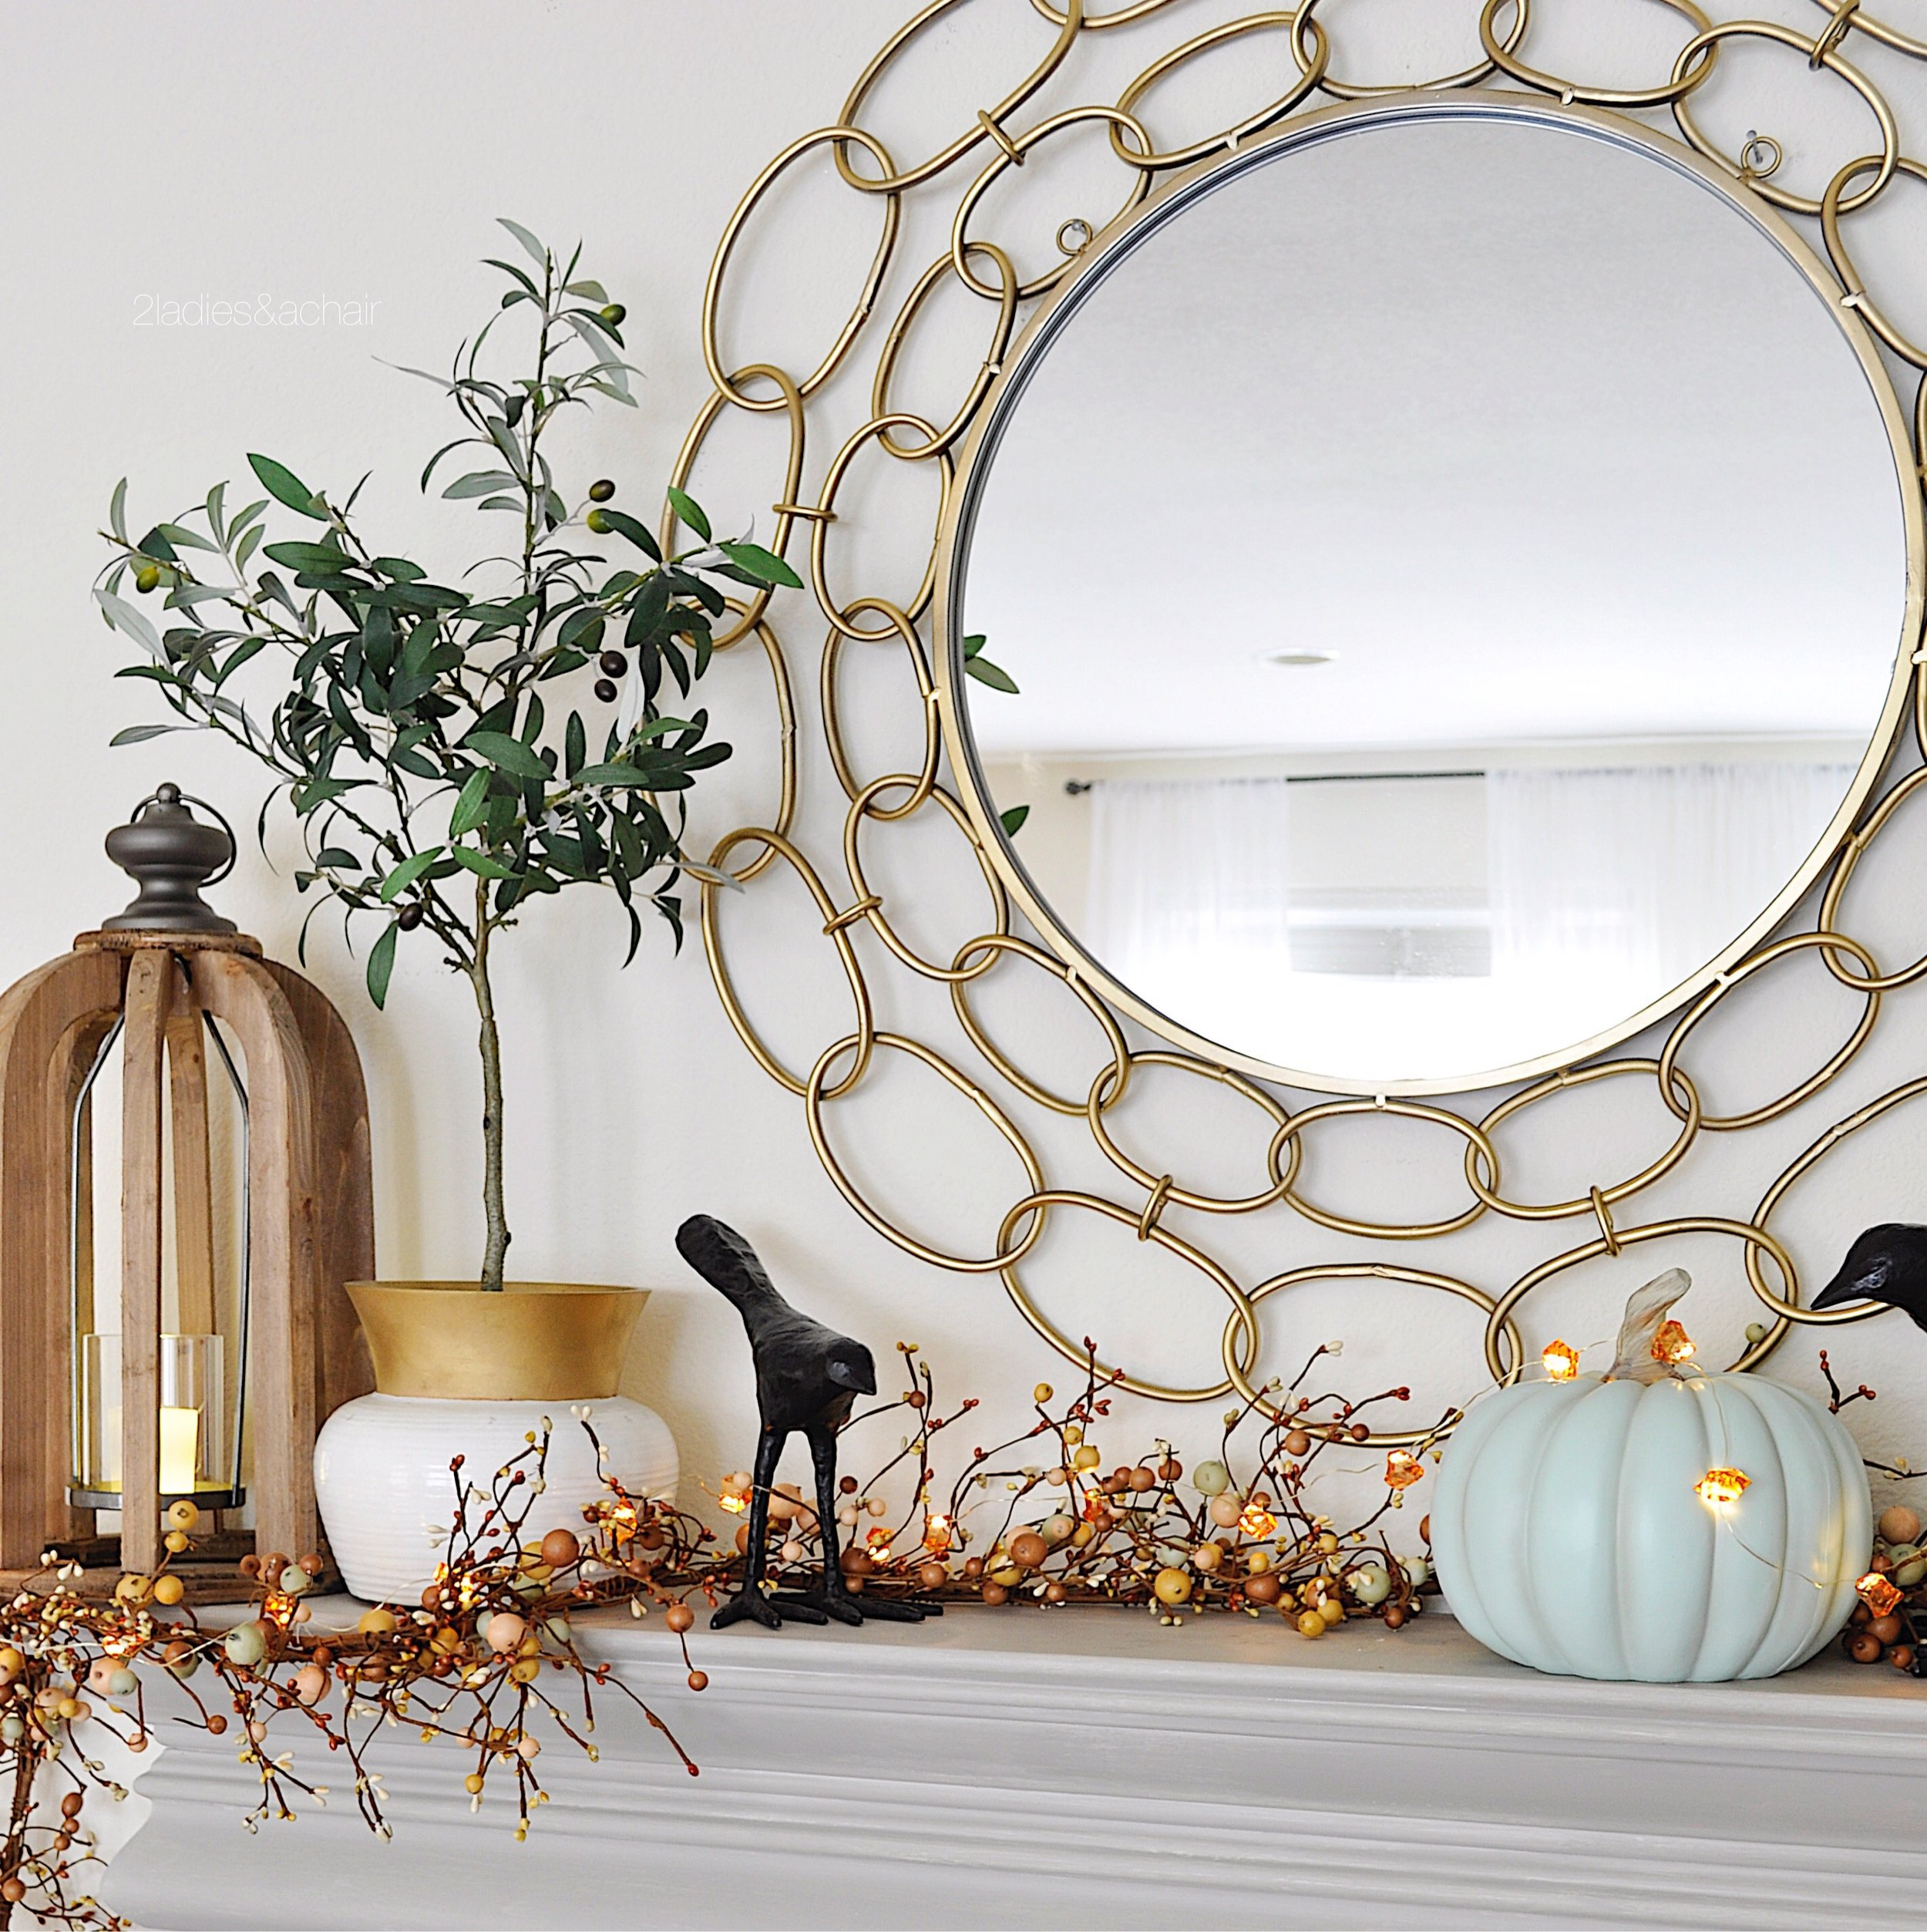 fall mantle IMG_7919.JPG